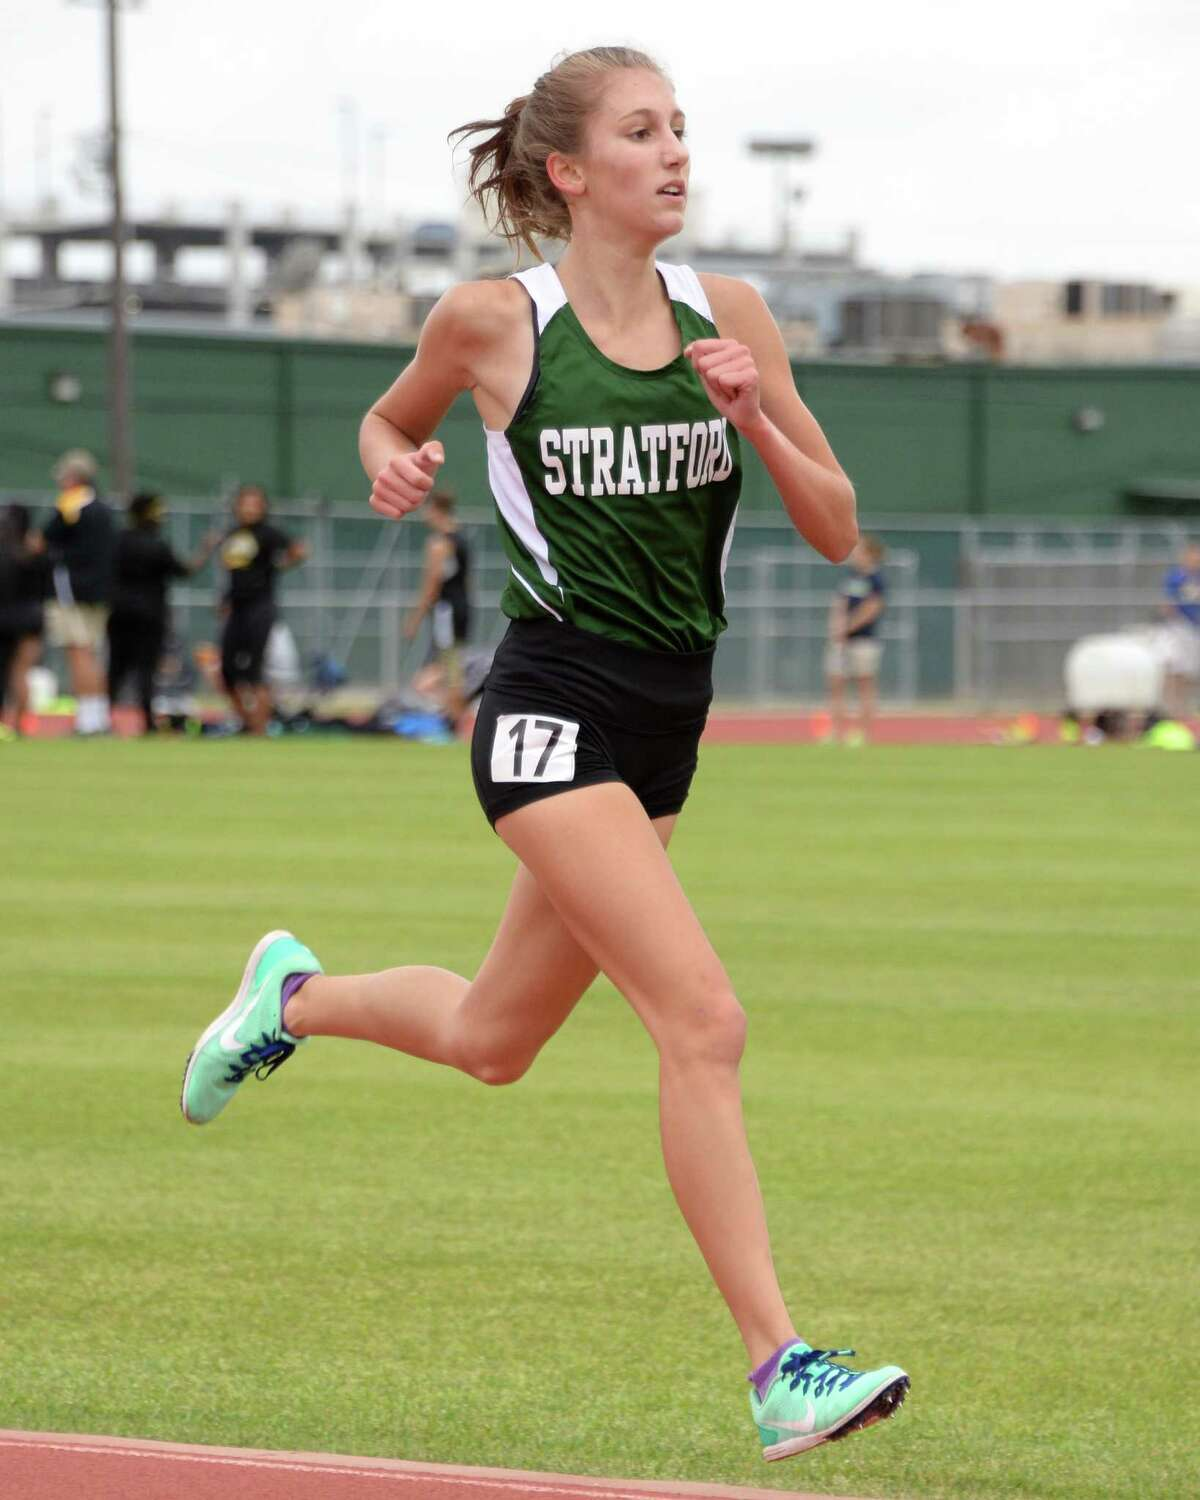 Grace Custer (17) of Stratford finishes in first place of the girls 3200 Meter event at the 15-6A Varsity District Track Meet on April 11, 2017 at Stratford High School, Houston, TX.